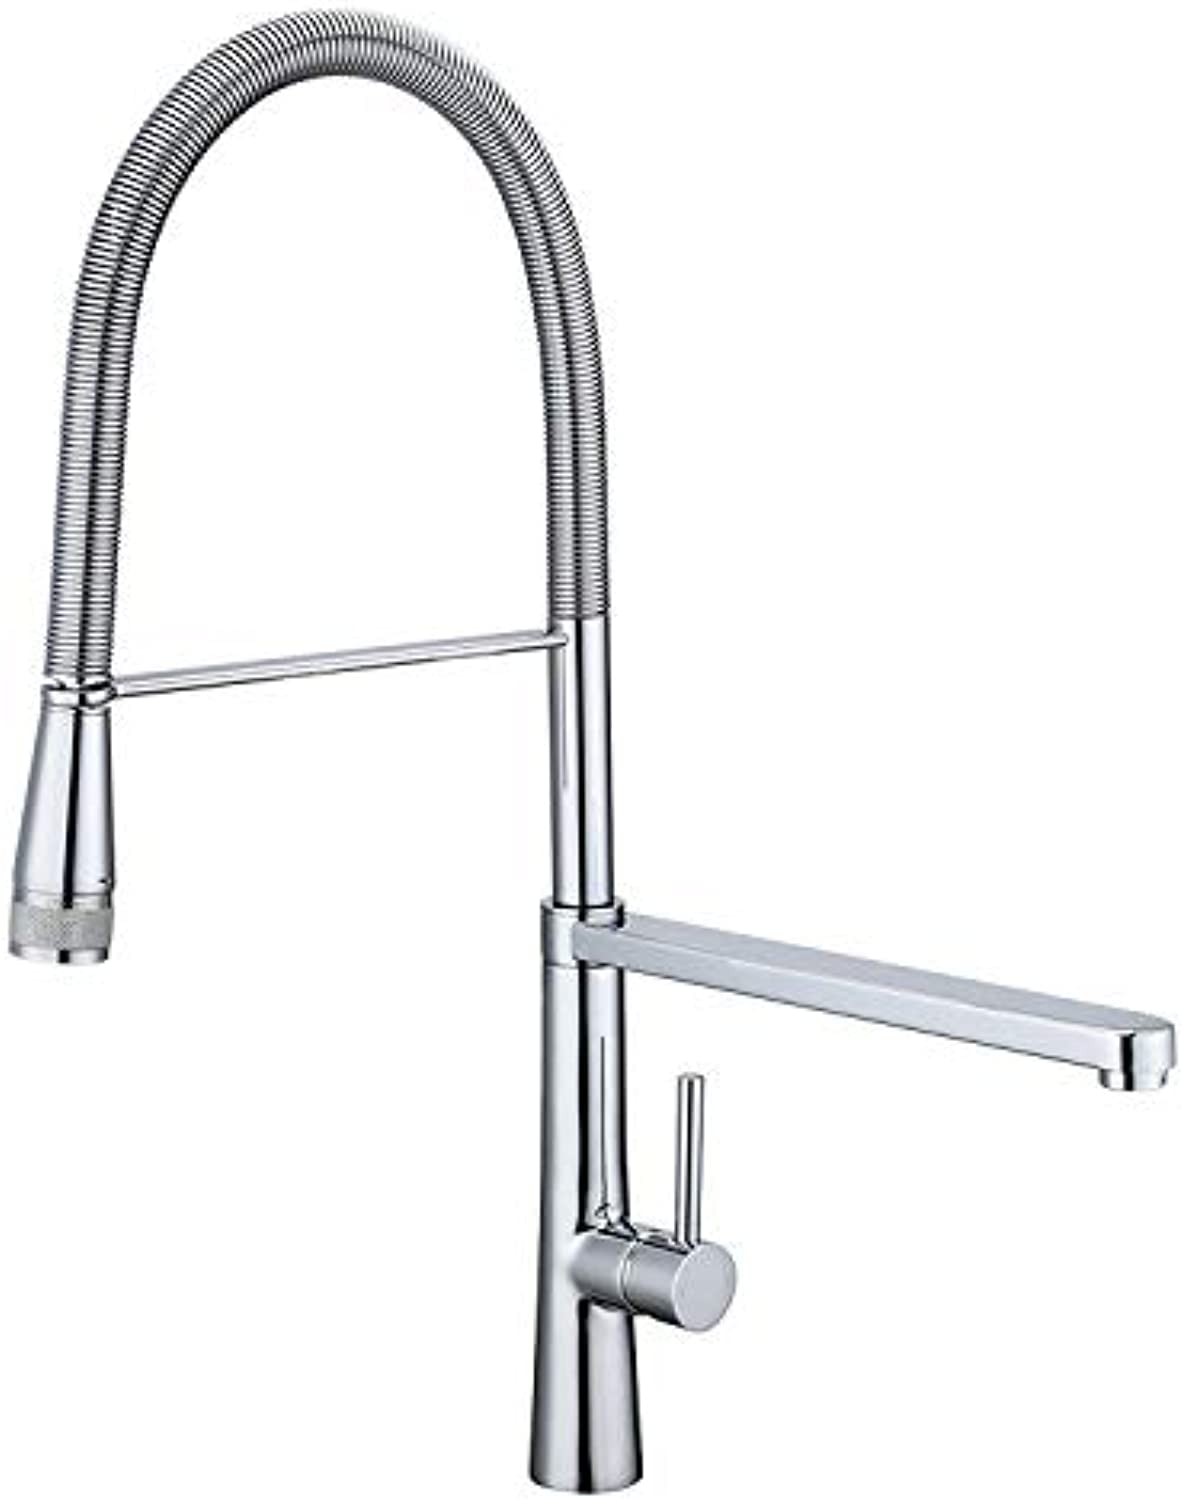 redOOY Taps Faucet Kitchen Hair Spring Multifunctional Kitchen Faucet